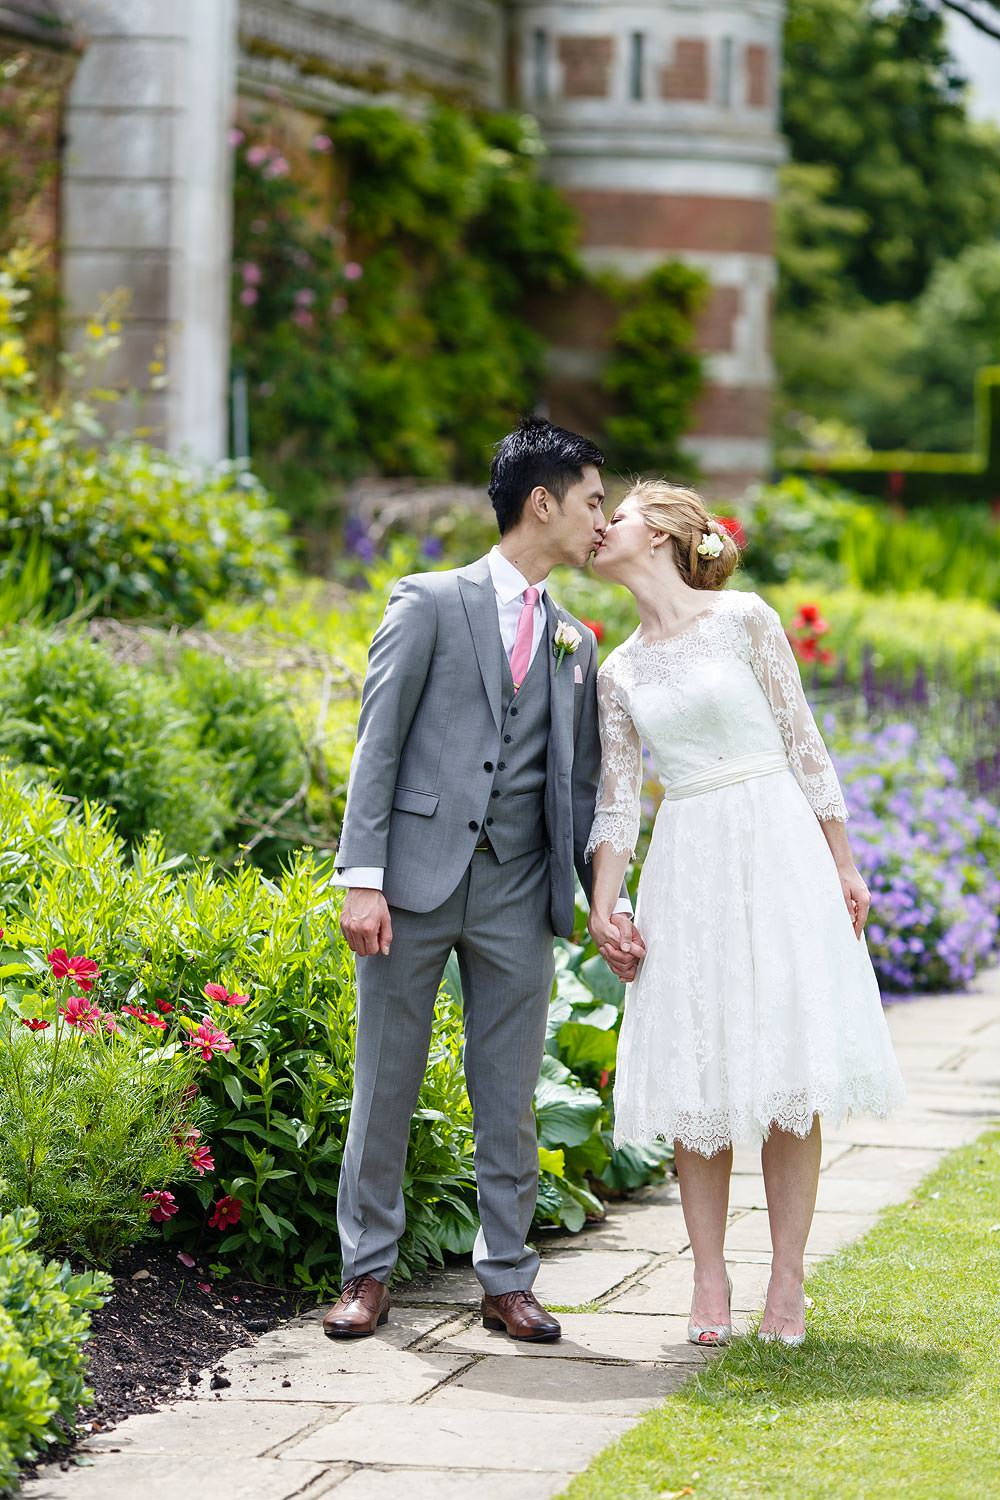 They kiss at Cliveden House